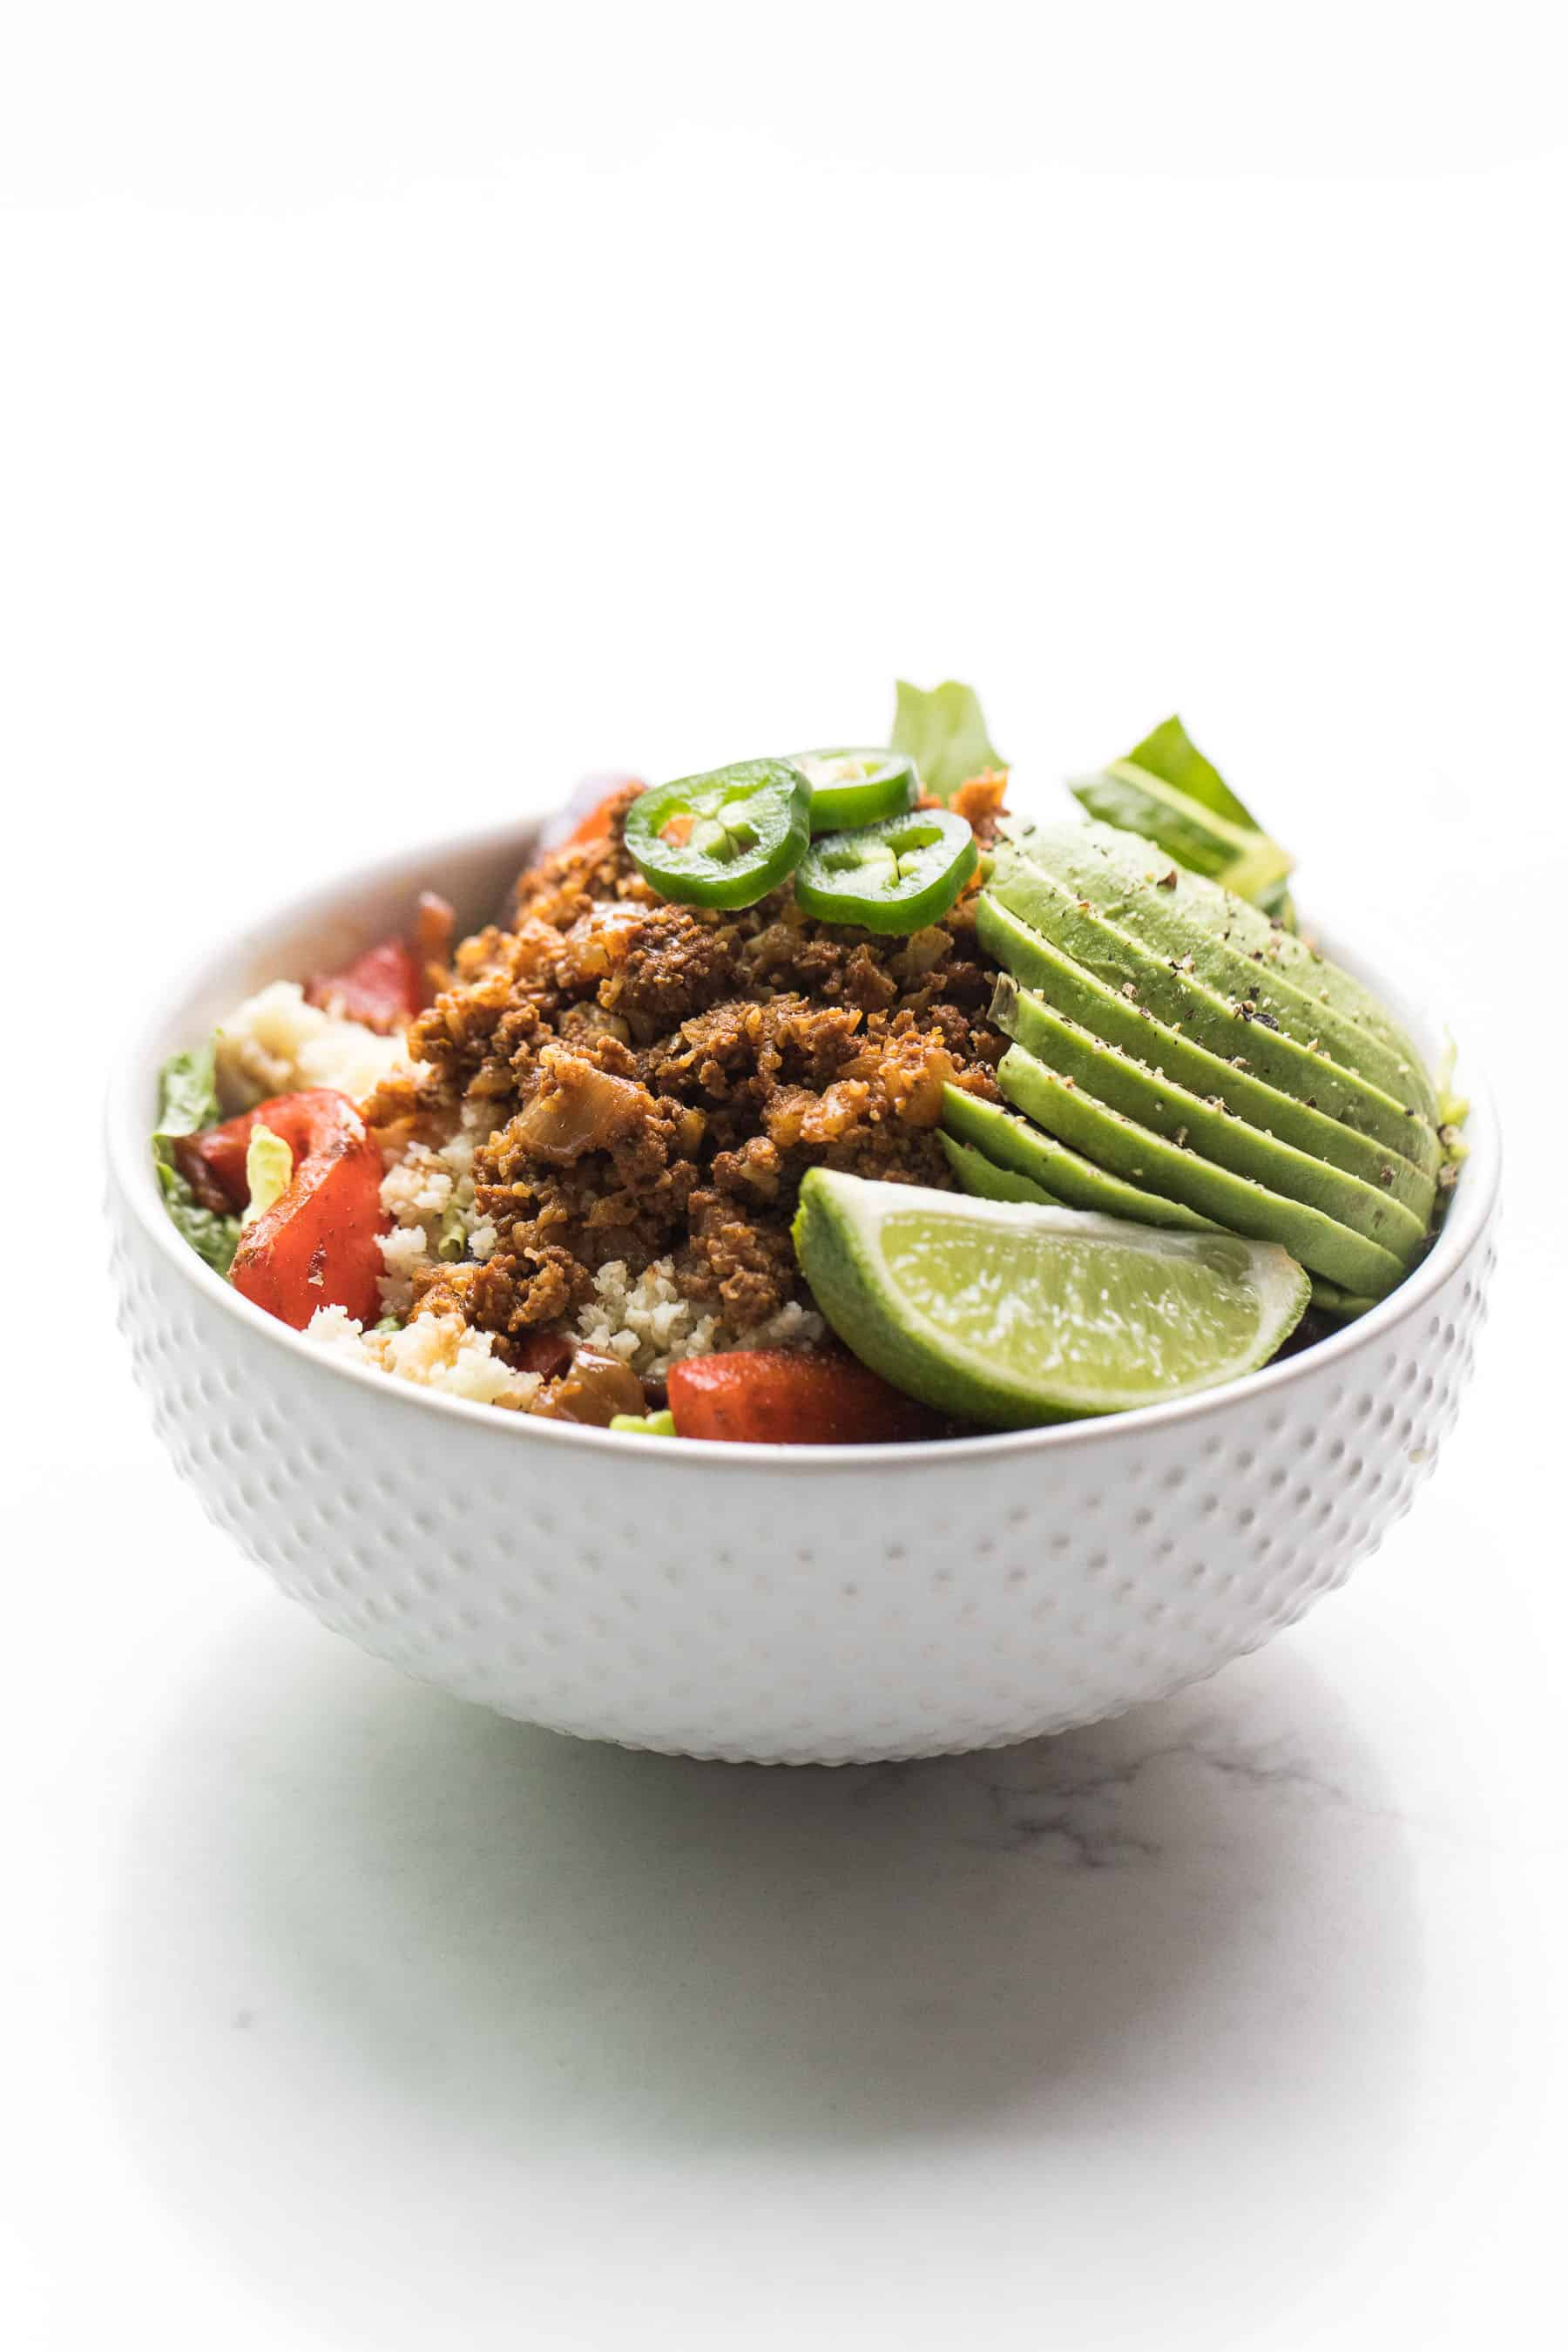 beef burrito taco bowl in a white bowl on a white background